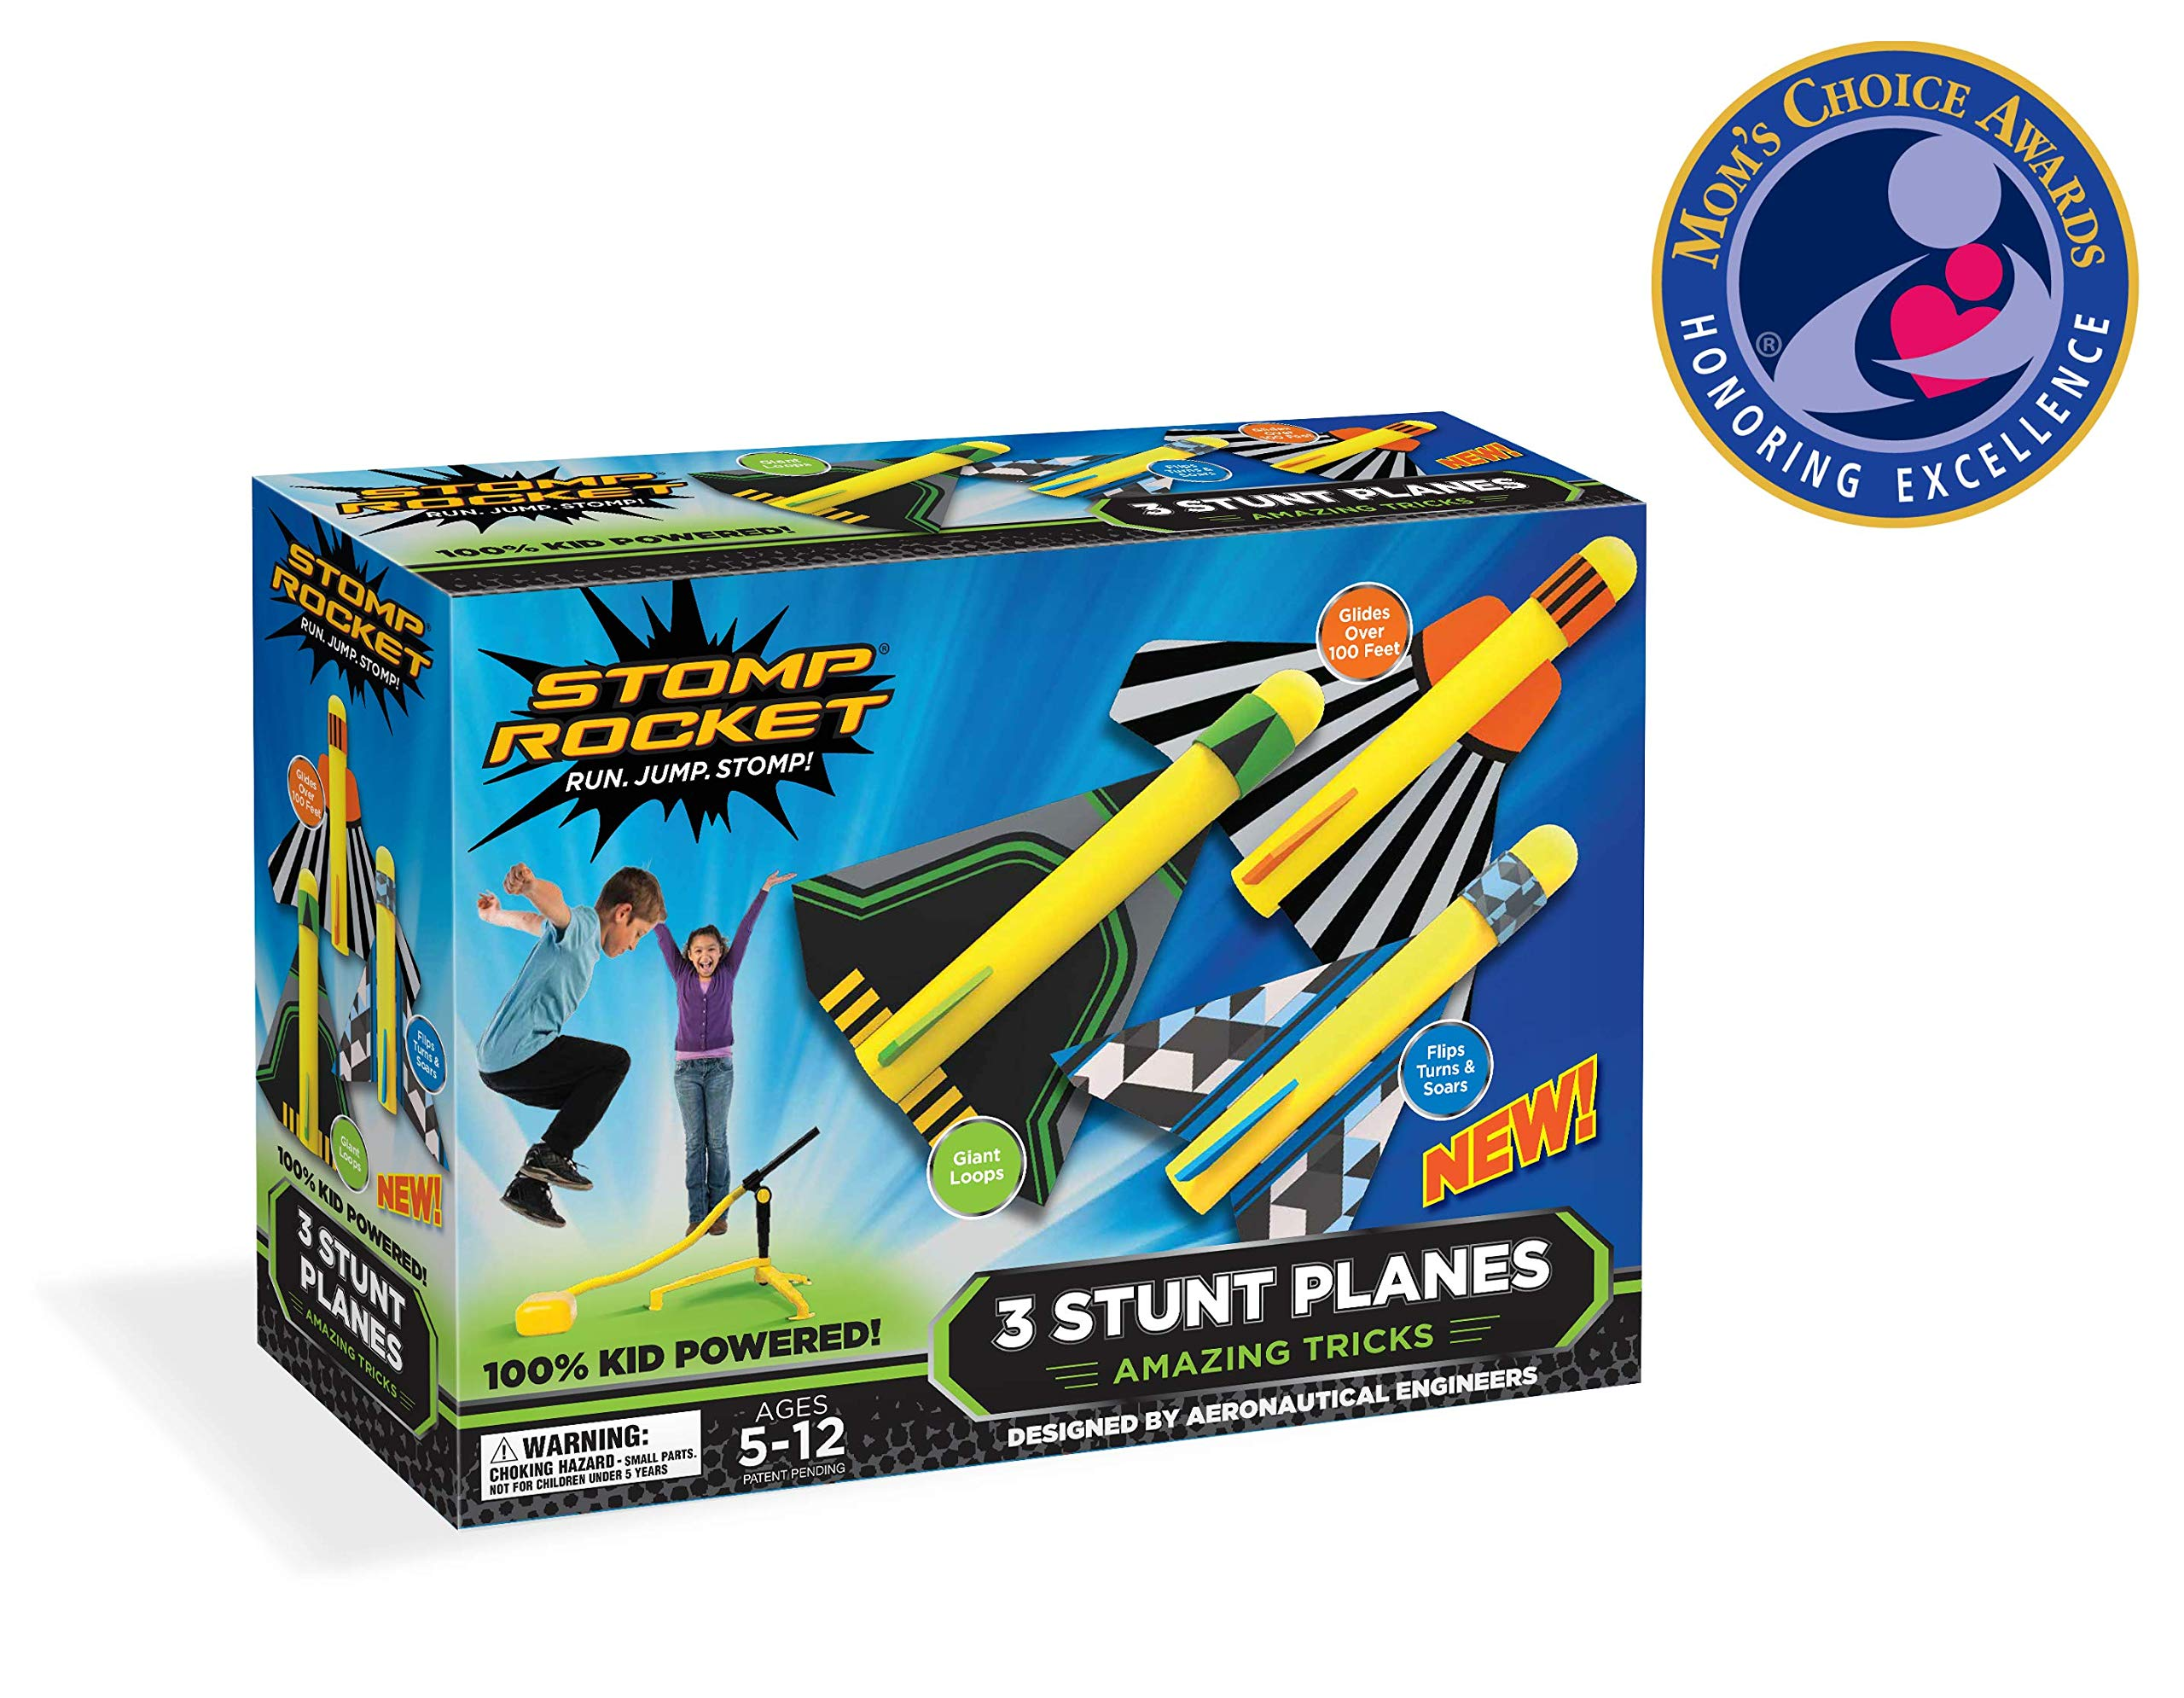 Stomp Rocket Stunt Planes - 3 Foam Plane Toys for Boys and Girls - Outdoor Rocket Toy Gift for Ages 5 (6, 7, 8) and Up by Stomp Rocket